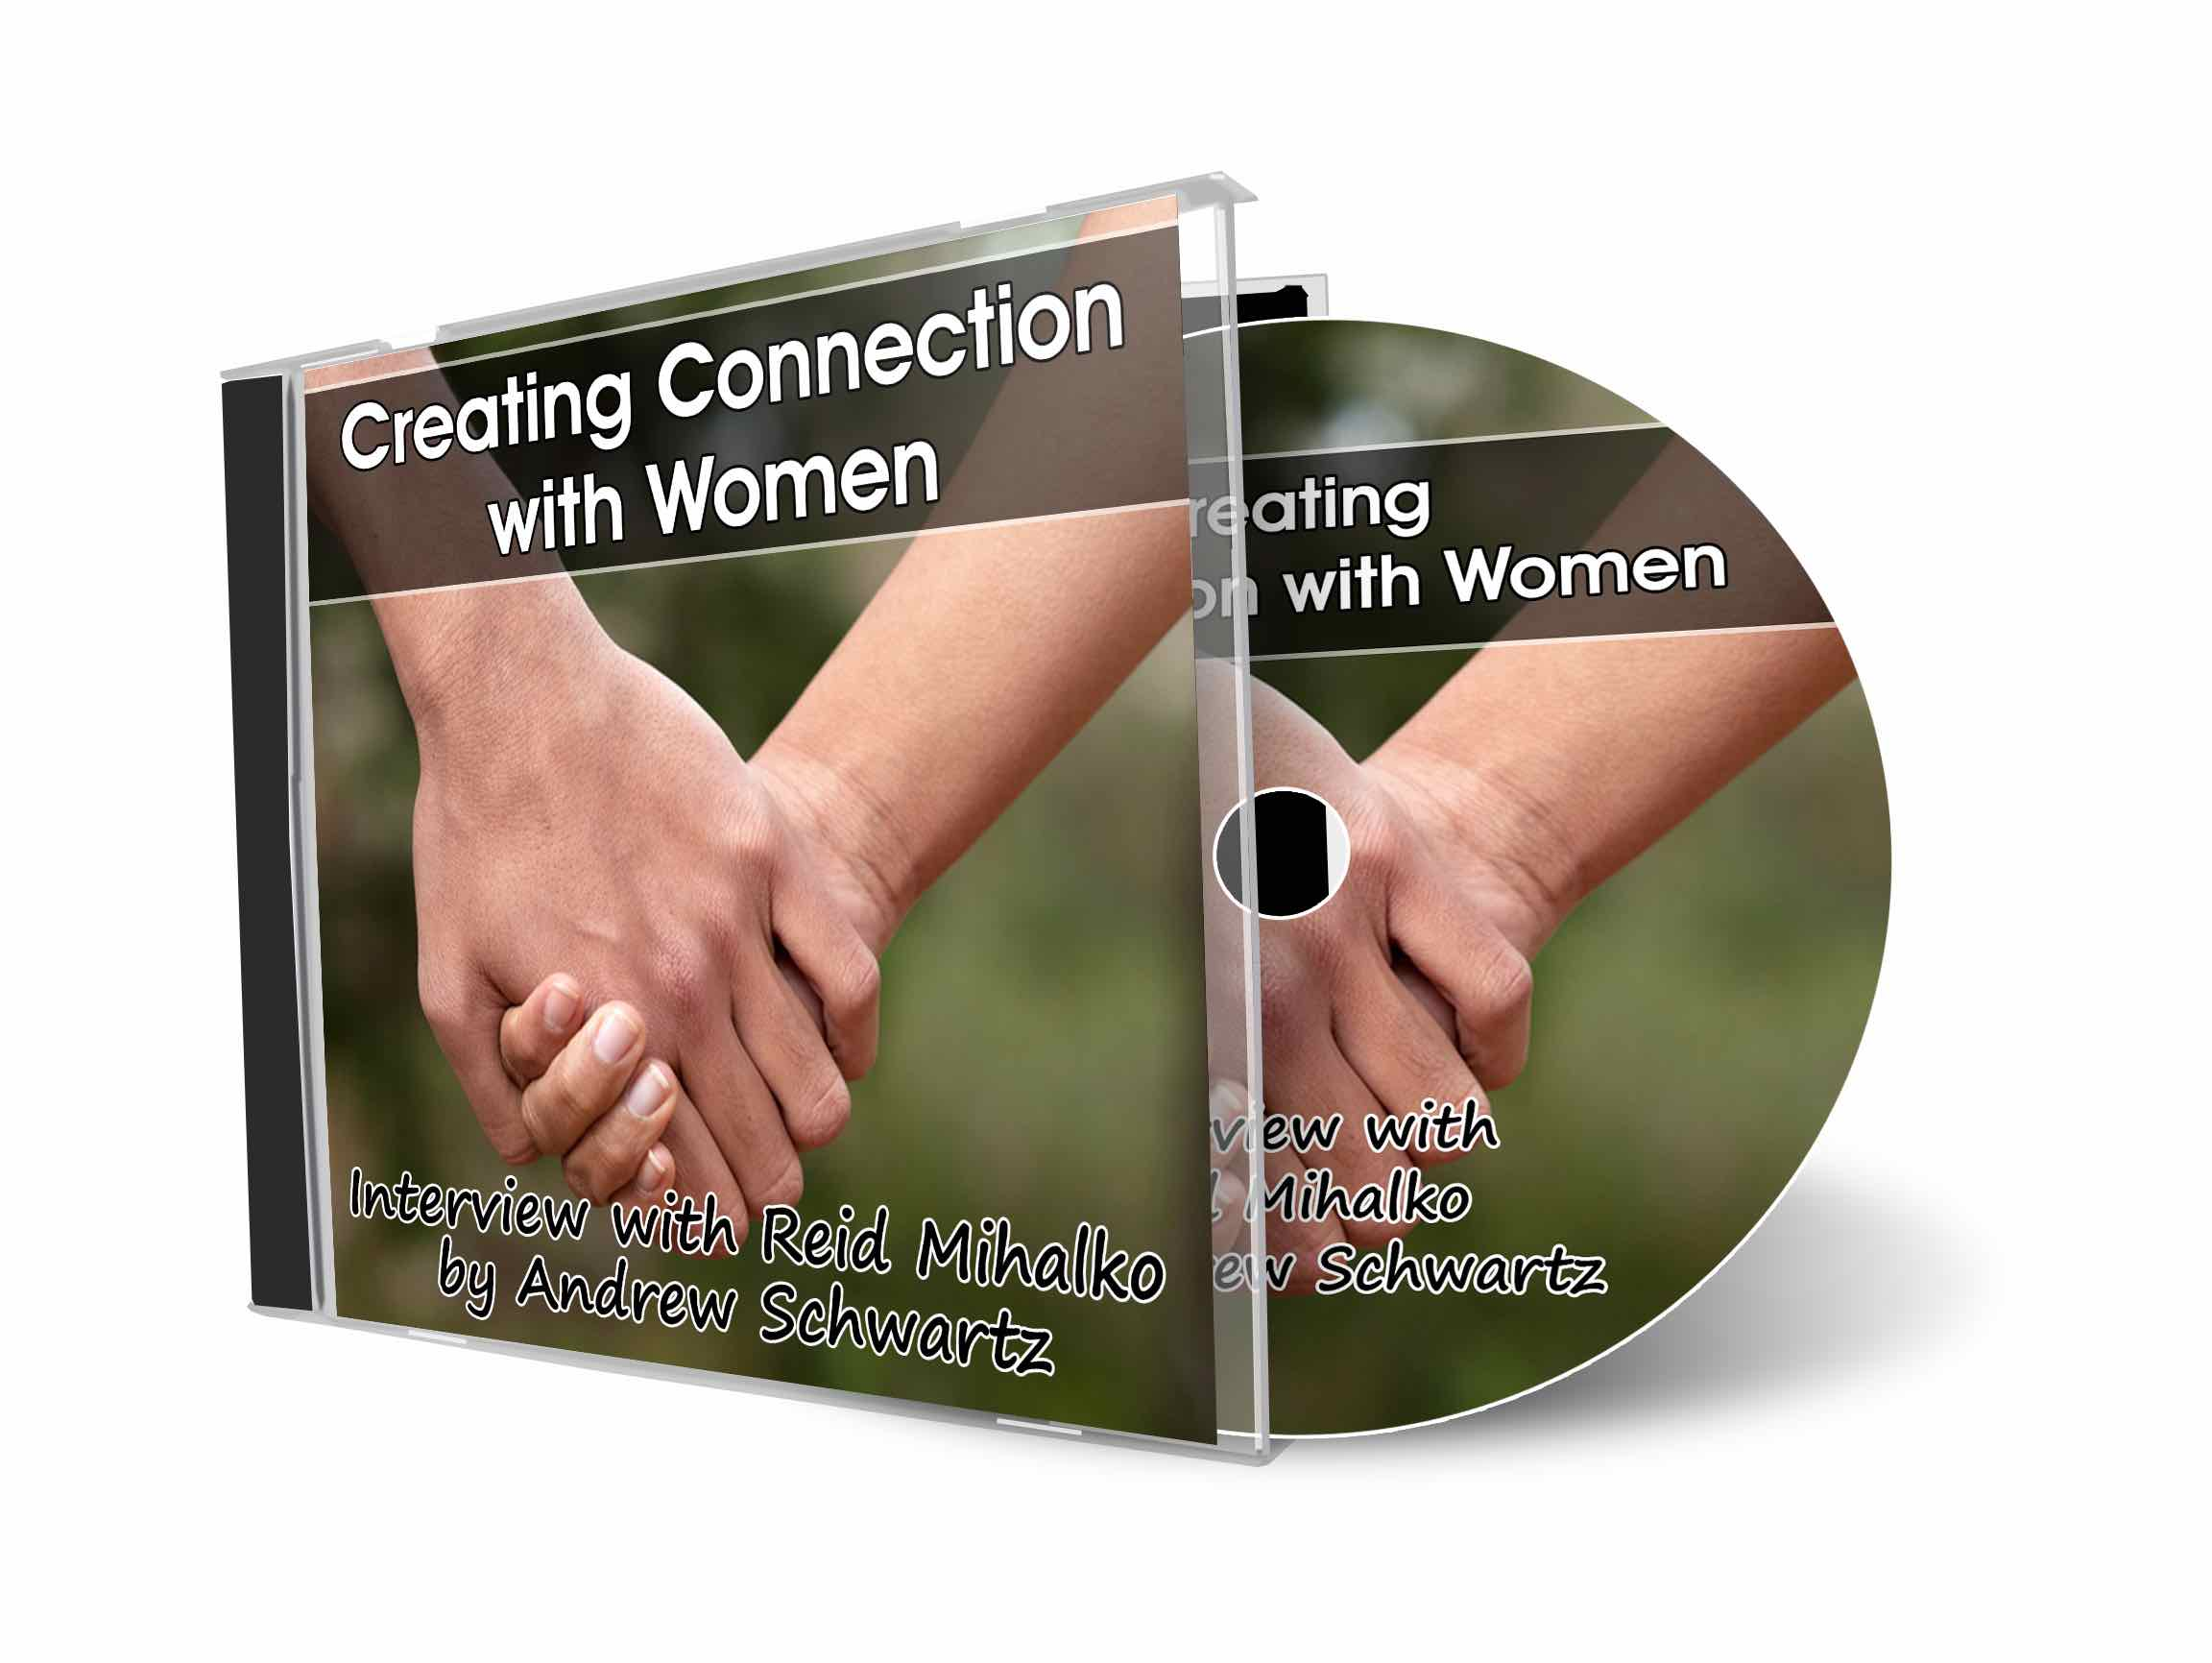 Creating Connection with Women